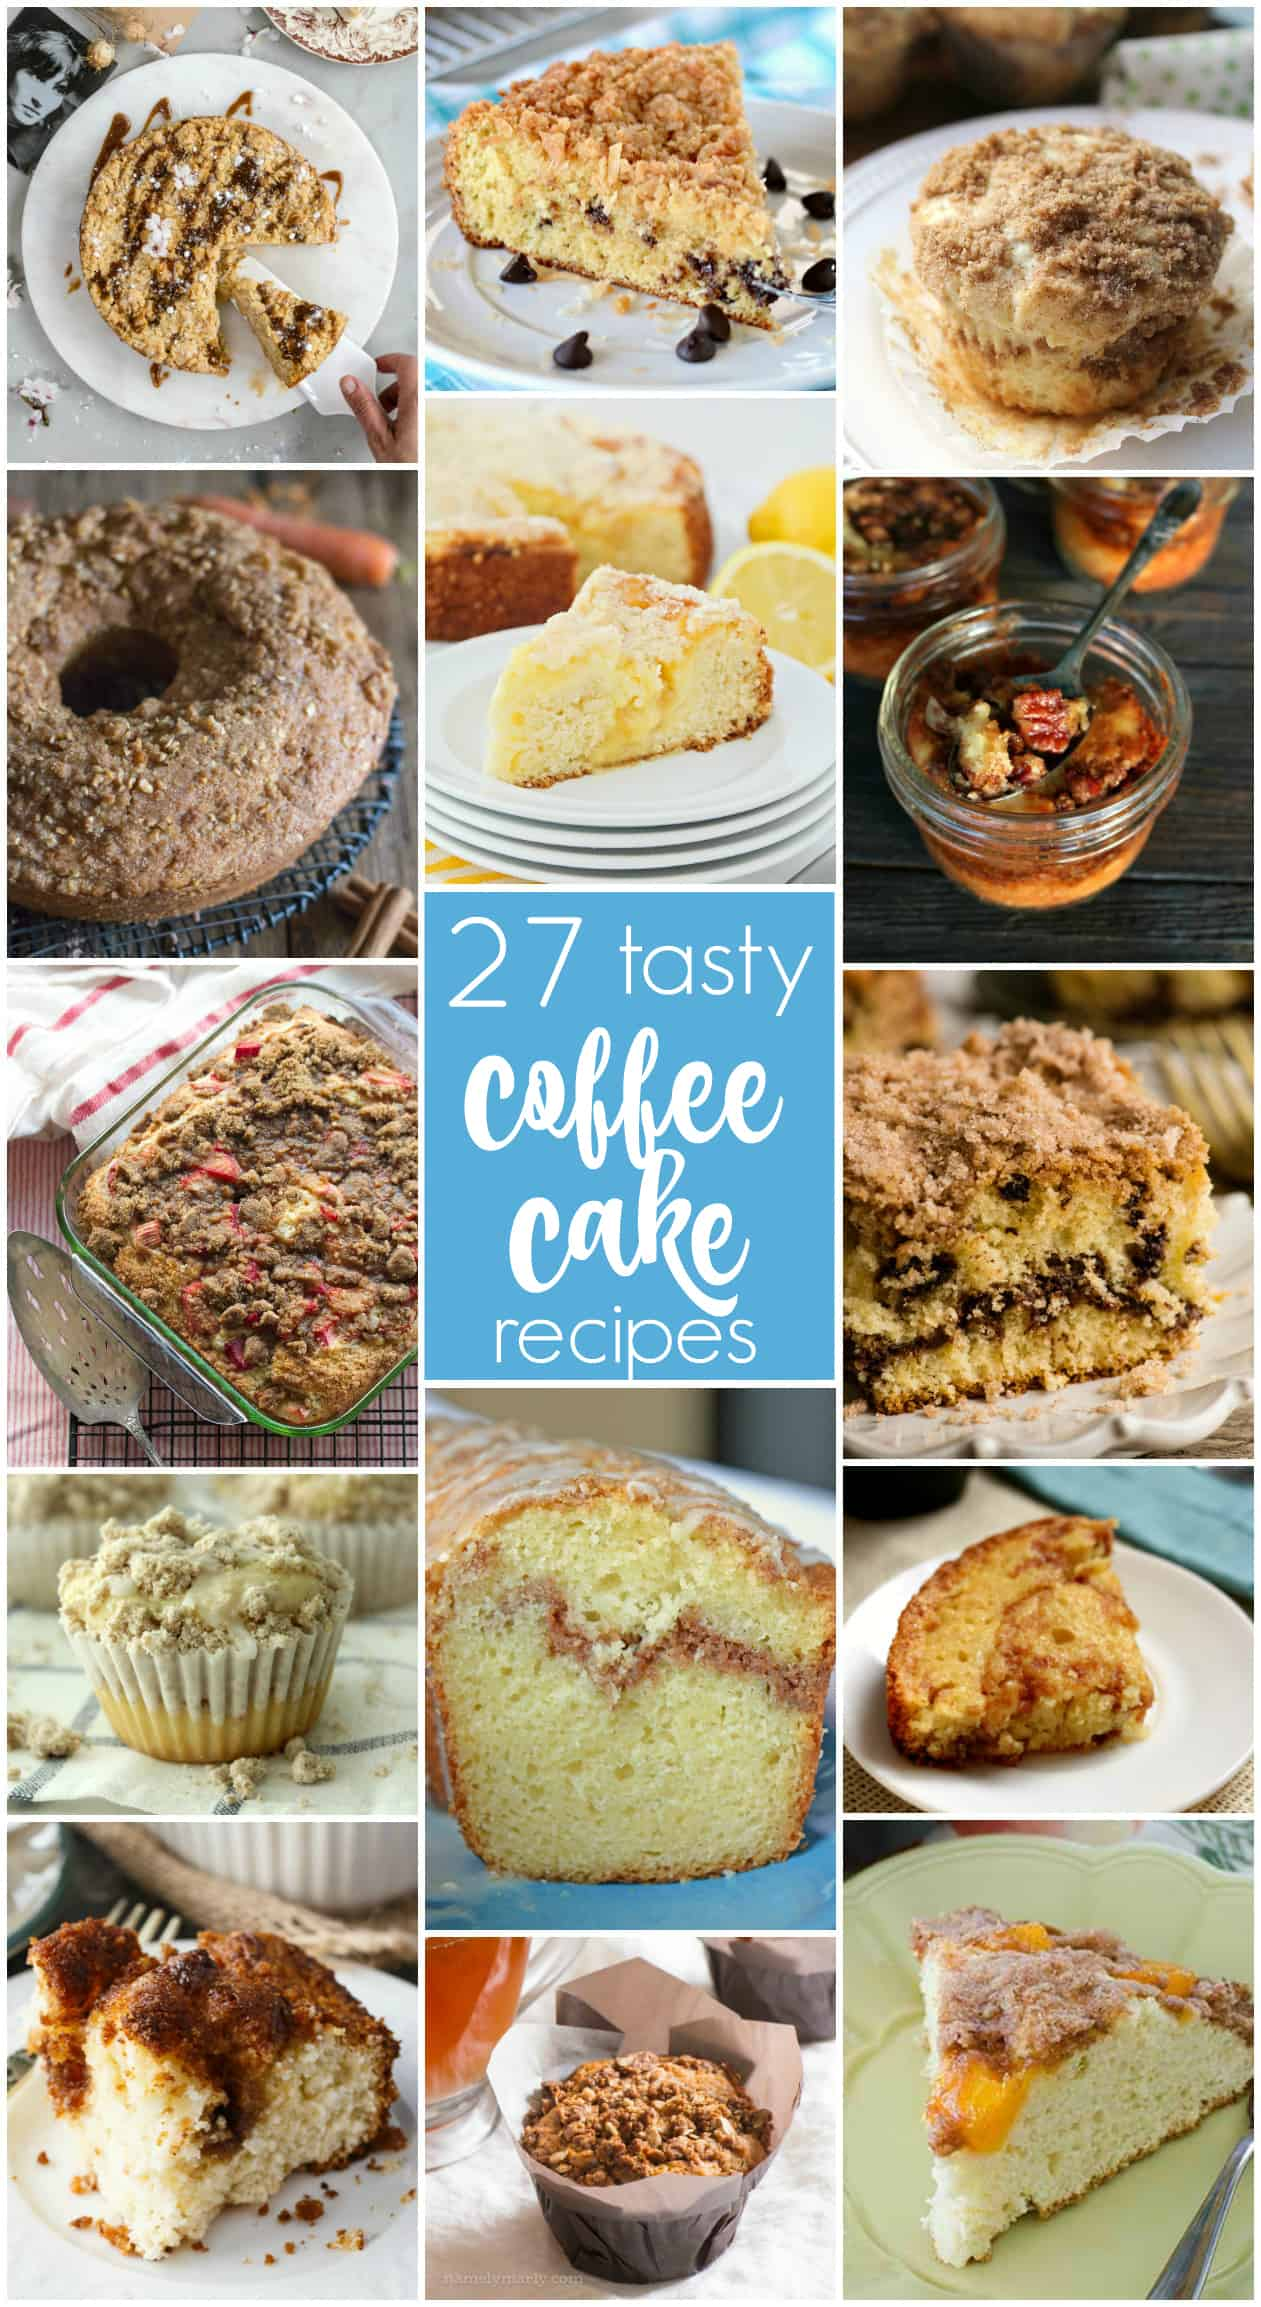 27 tasty coffee cake recipes